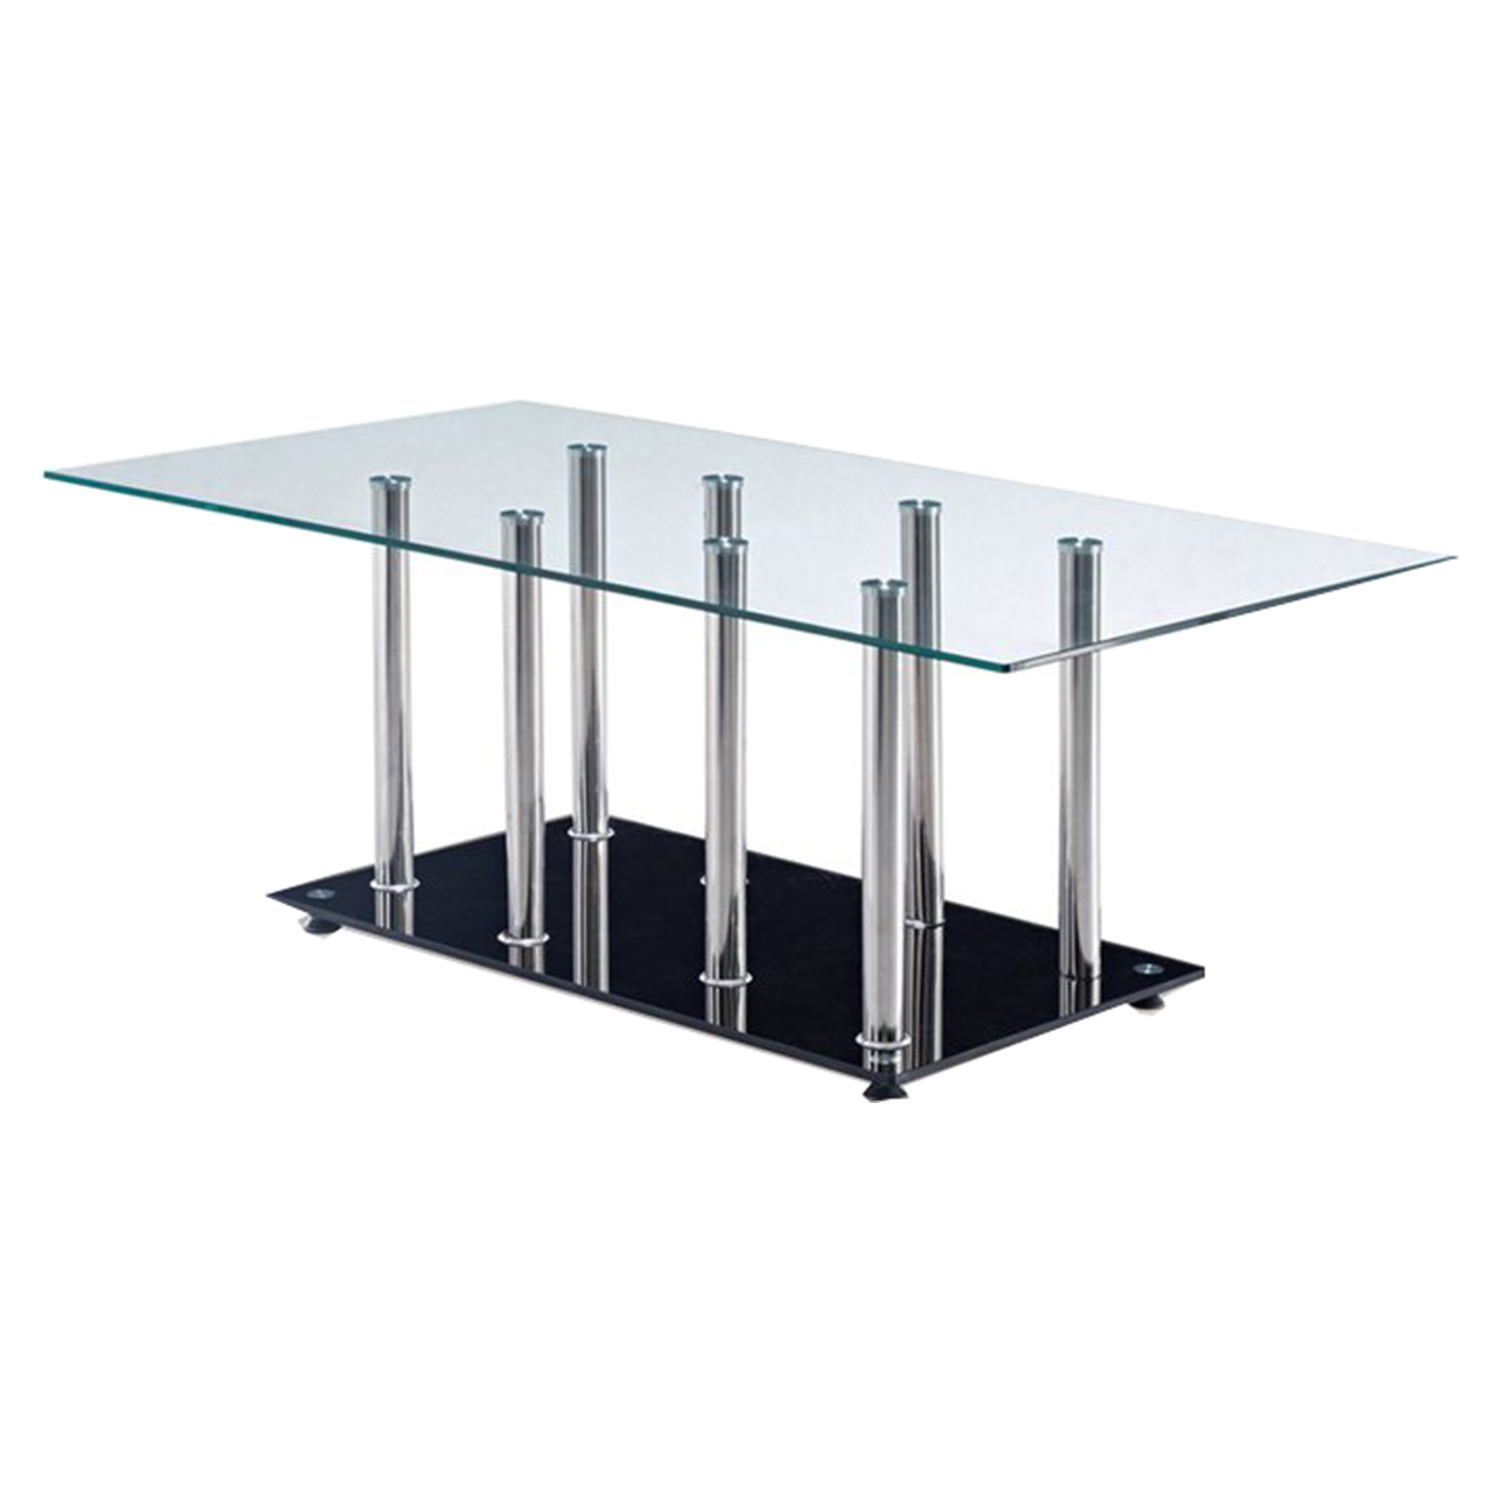 Aubrey Coffee Table - Clear/Black/Stainless Steel